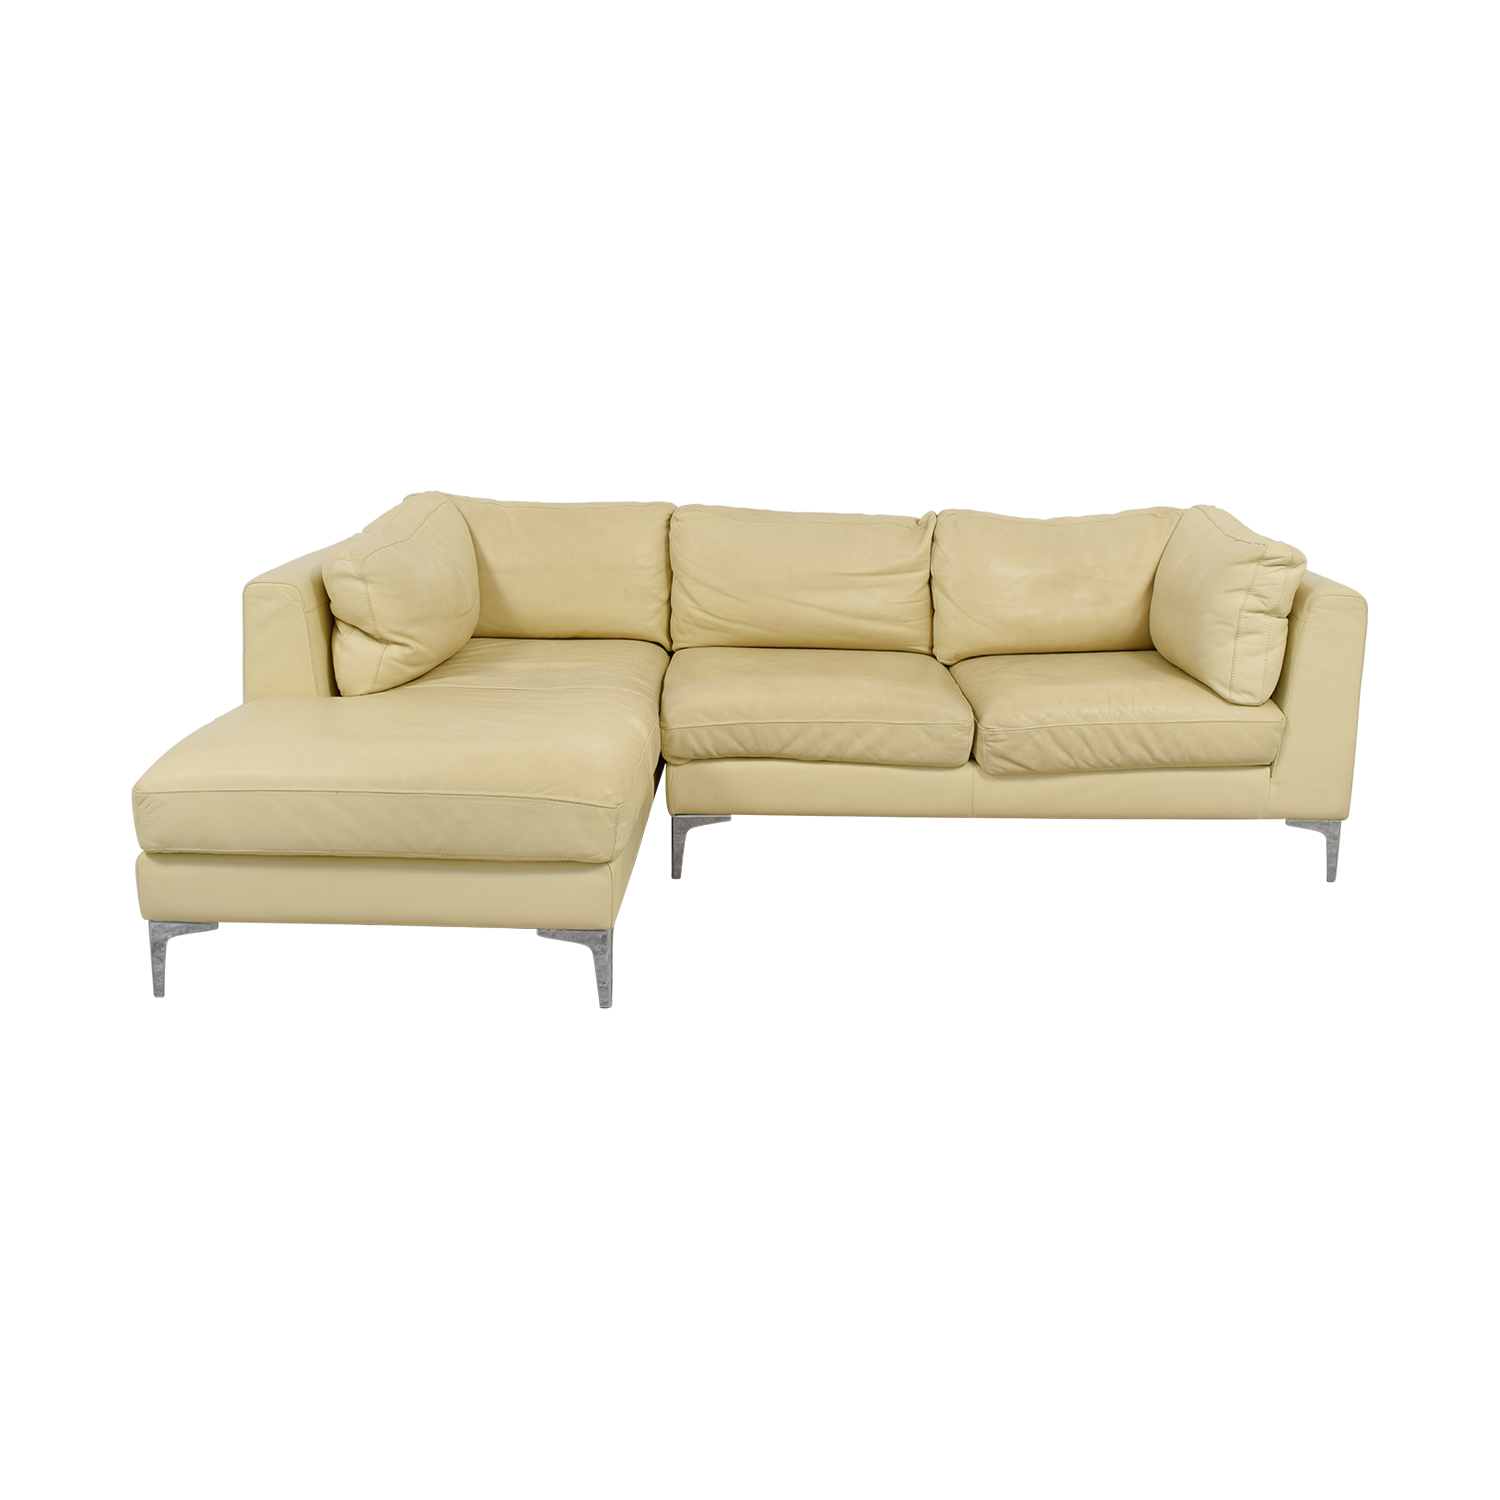 leather editions chaise sectional living is room by sh panaro natuzzi product